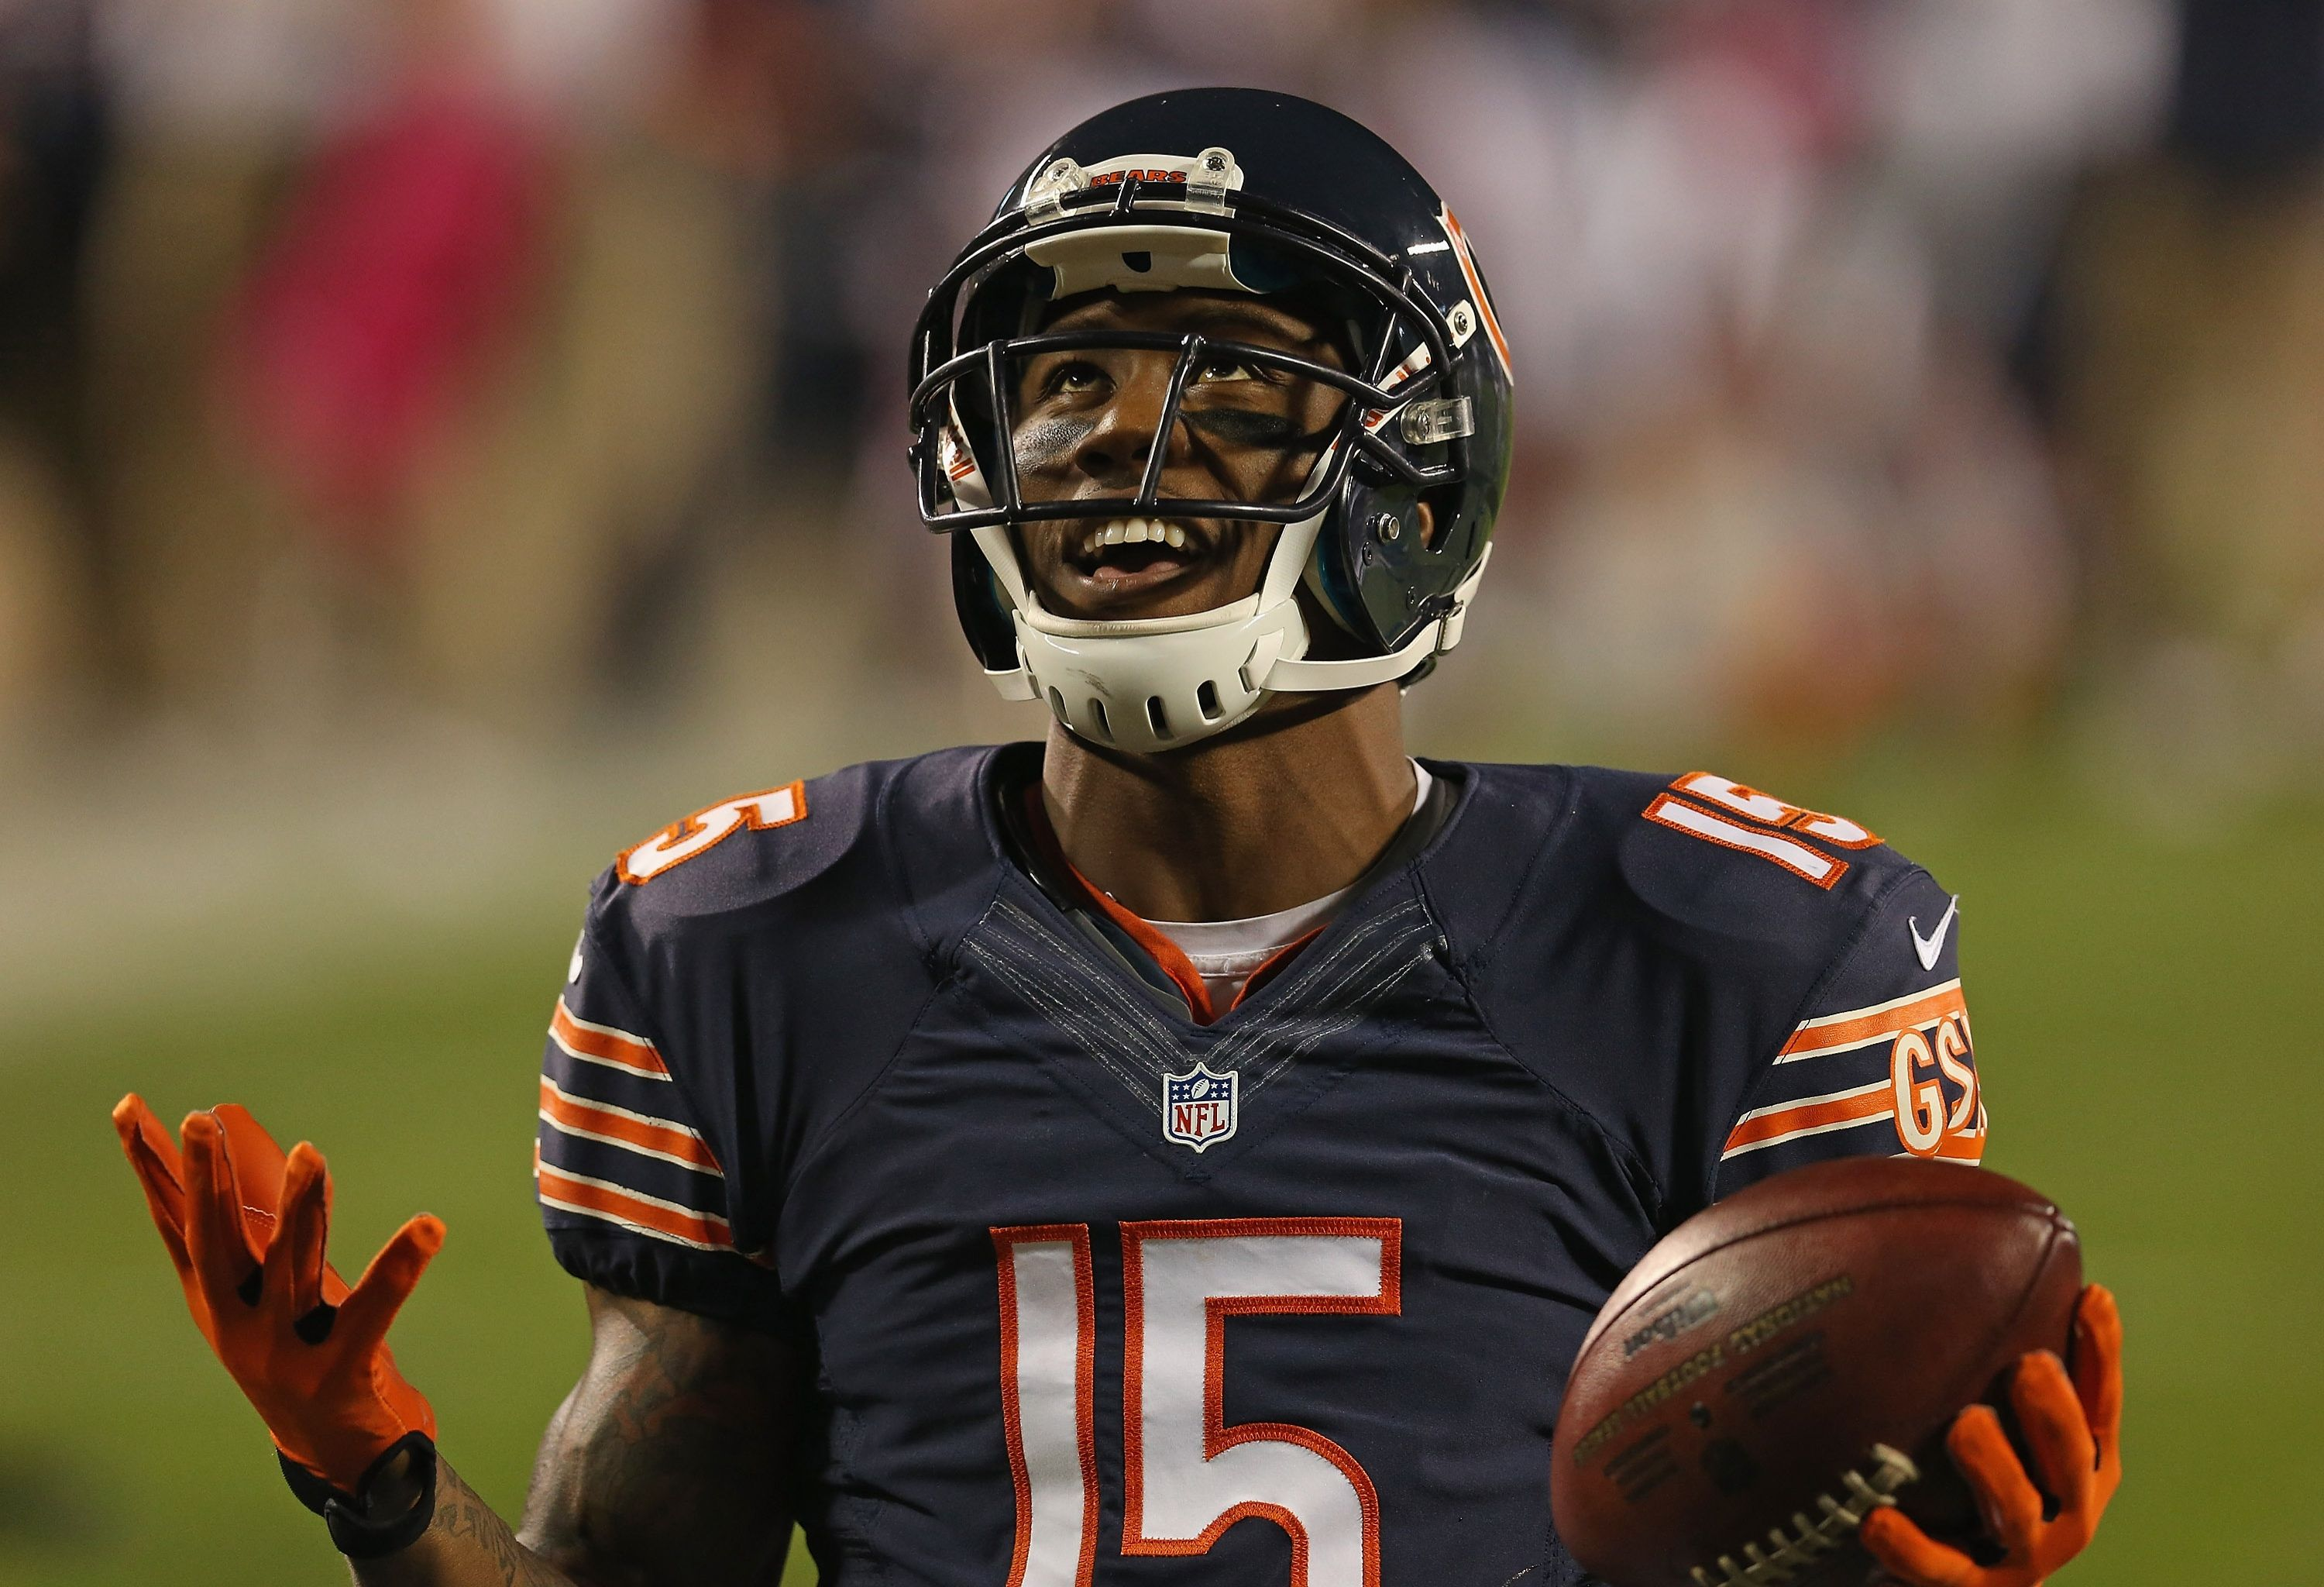 Pics For Chicago Bears Players Chicago Bears Football Helmets Players